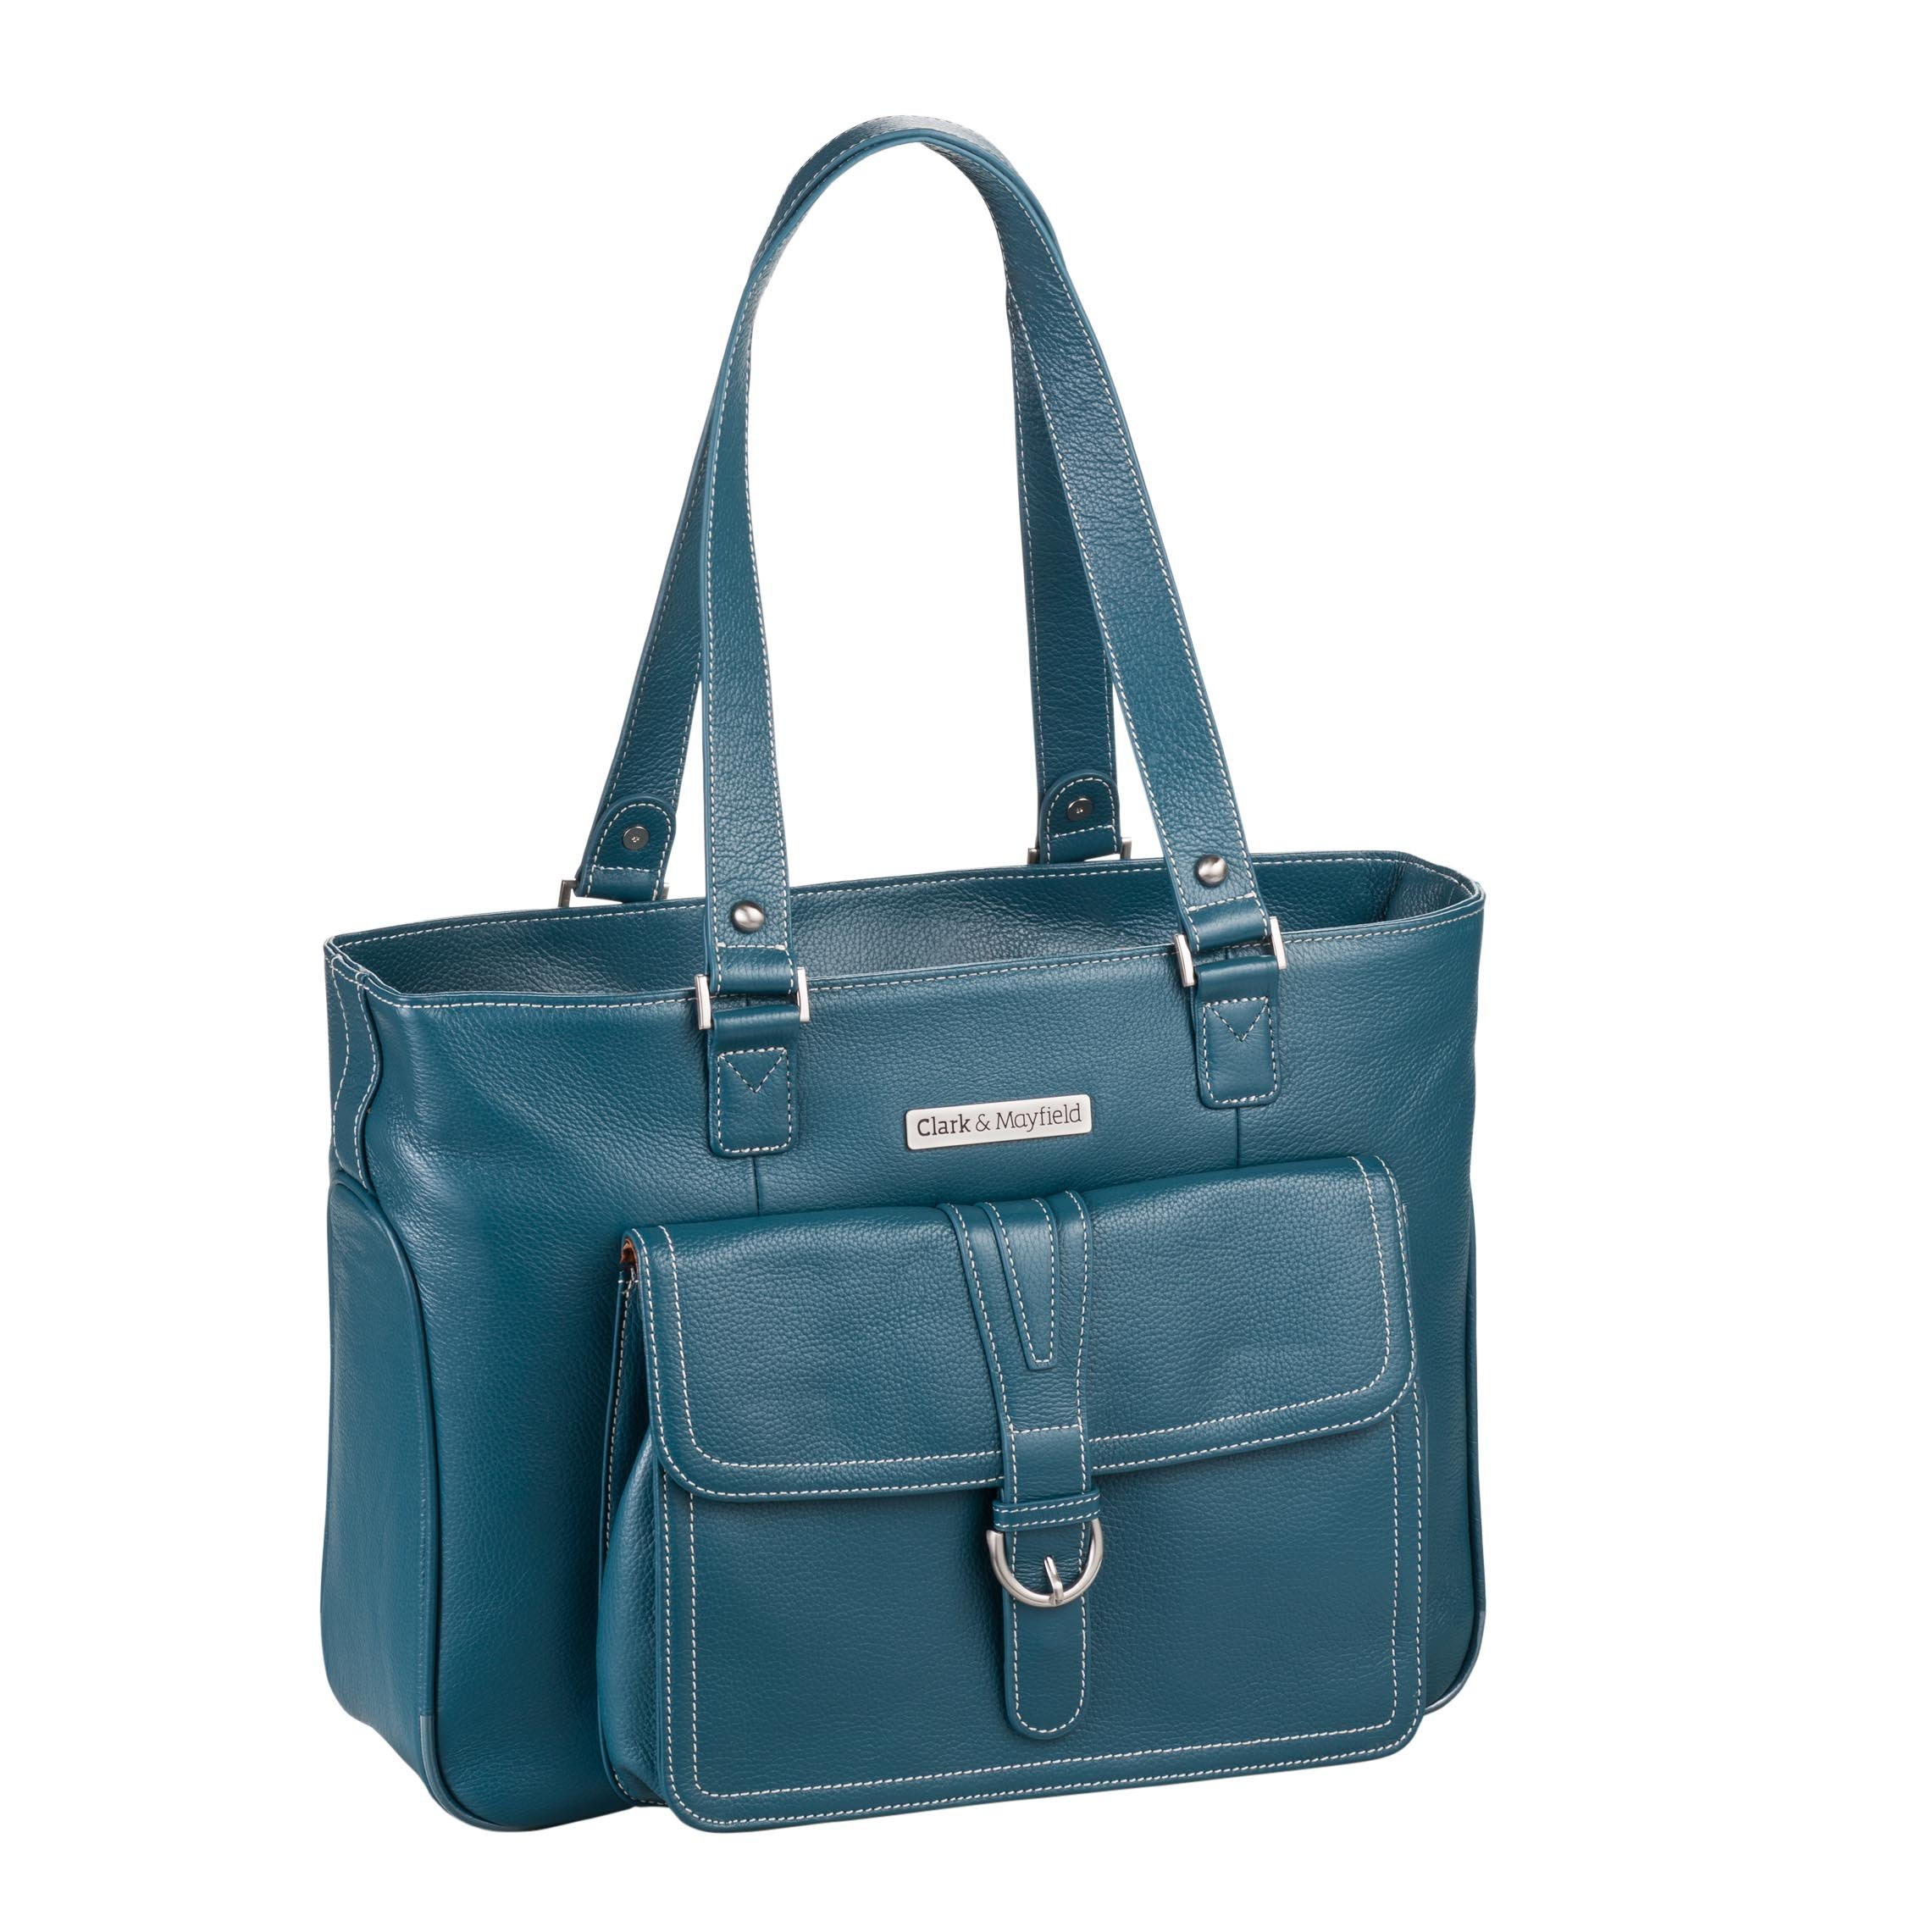 Clark & Mayfield Women's Stafford Pro Leather Laptop Tote (Fits laptops up to 15.6'', Deep Teal)